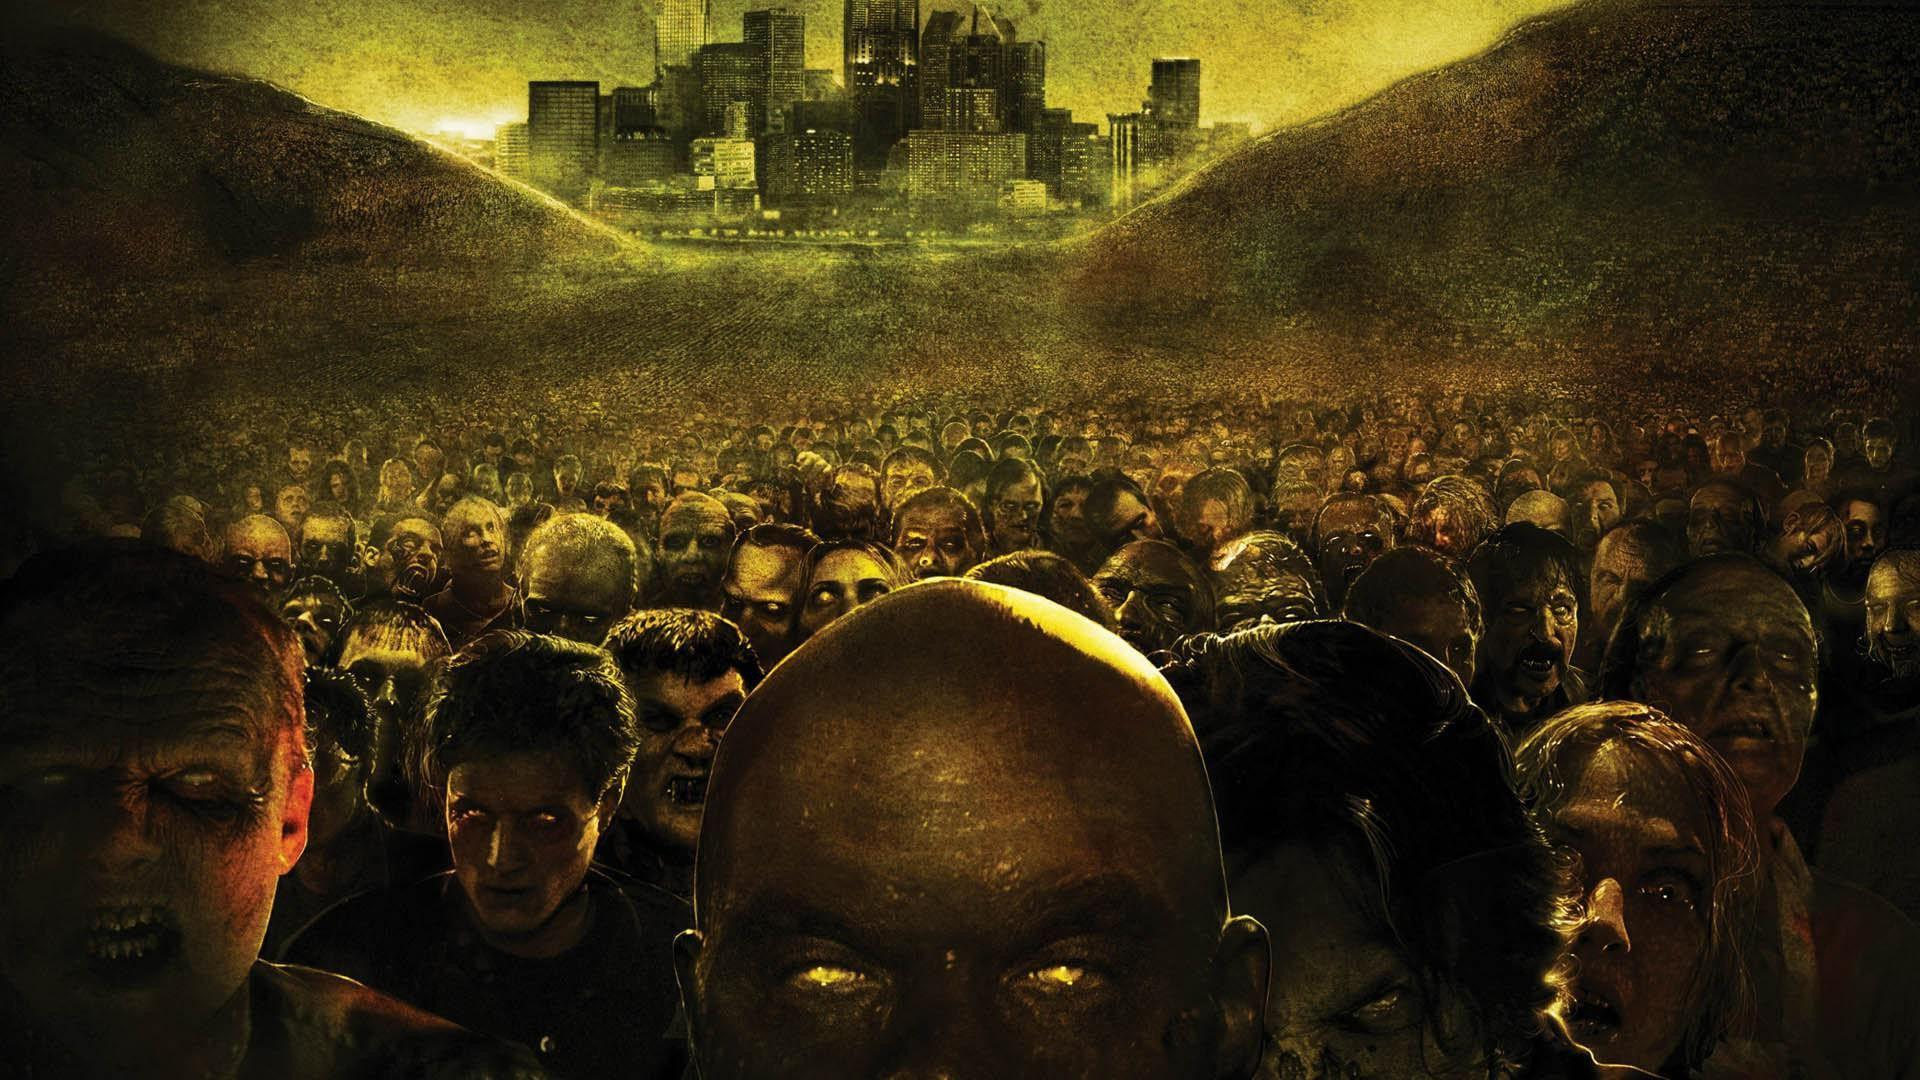 Zombies Backgrounds HD - Wallpaper Cave